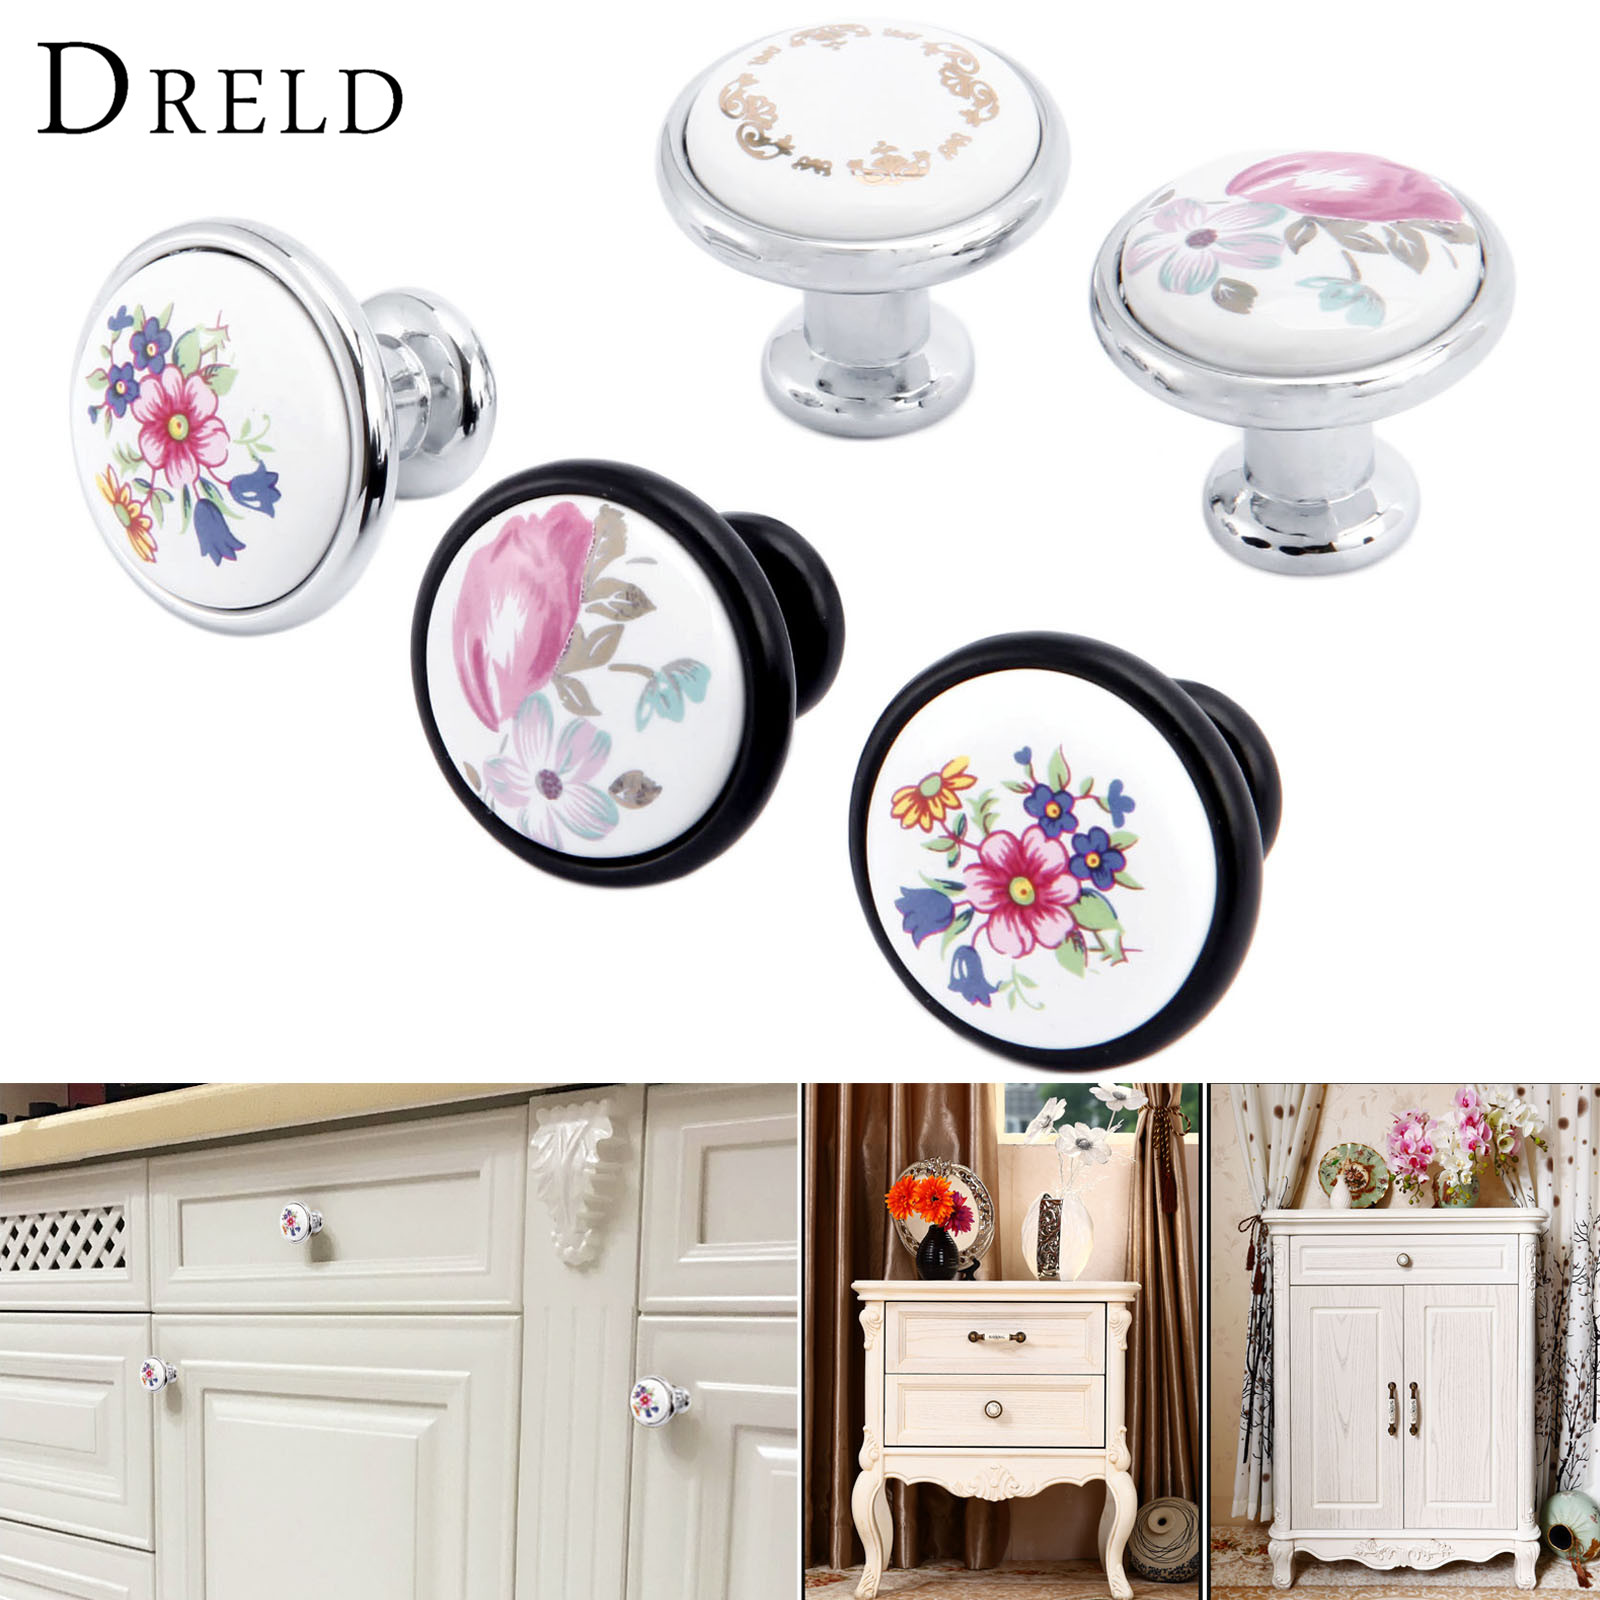 DRELD Furniture Handle Modern Cabinet Knobs and Handles Door Cupboard Drawer Pull Handle for Kitchen Bedroom Furniture Hardware dreld 96 128 160mm furniture handle modern cabinet knobs and handles door cupboard drawer kitchen pull handle furniture hardware